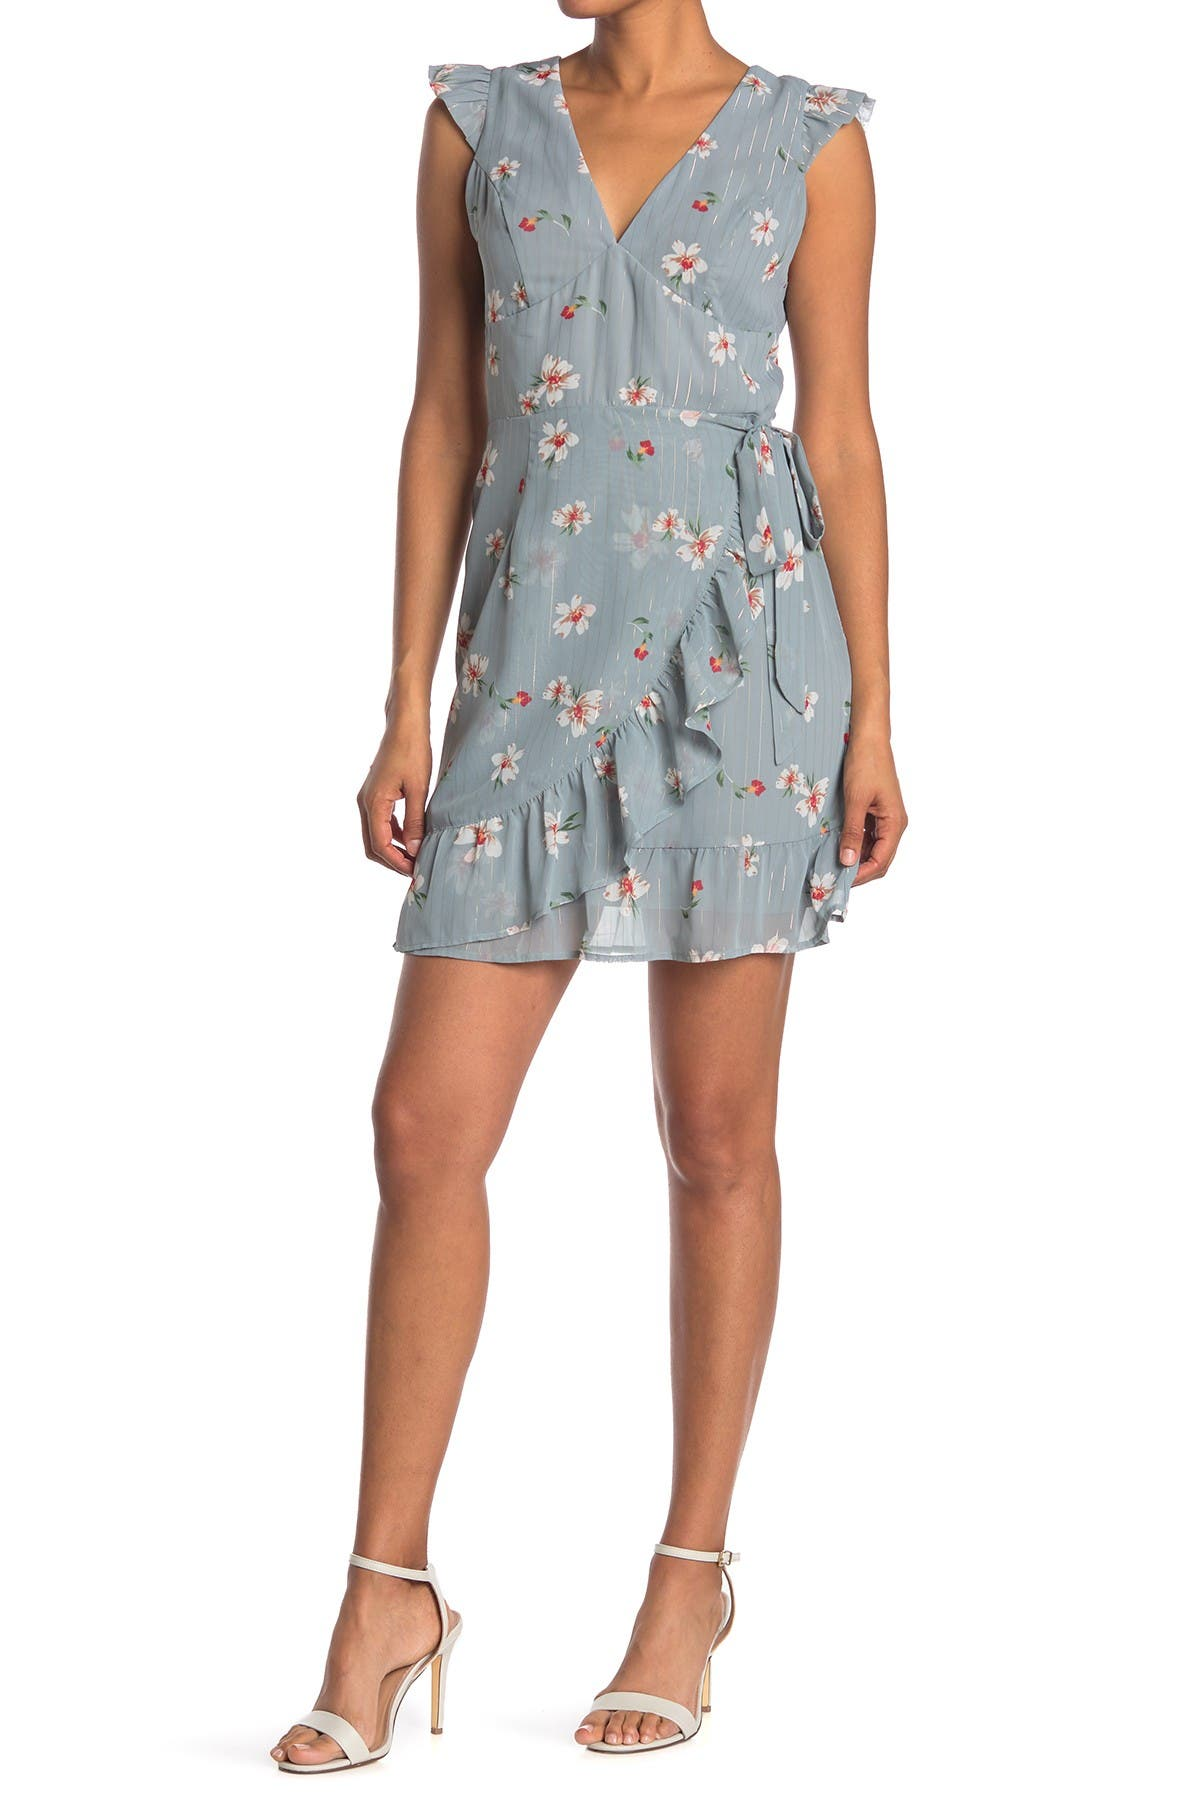 Image of Collective Concepts Floral Ruffle Wrap Dress